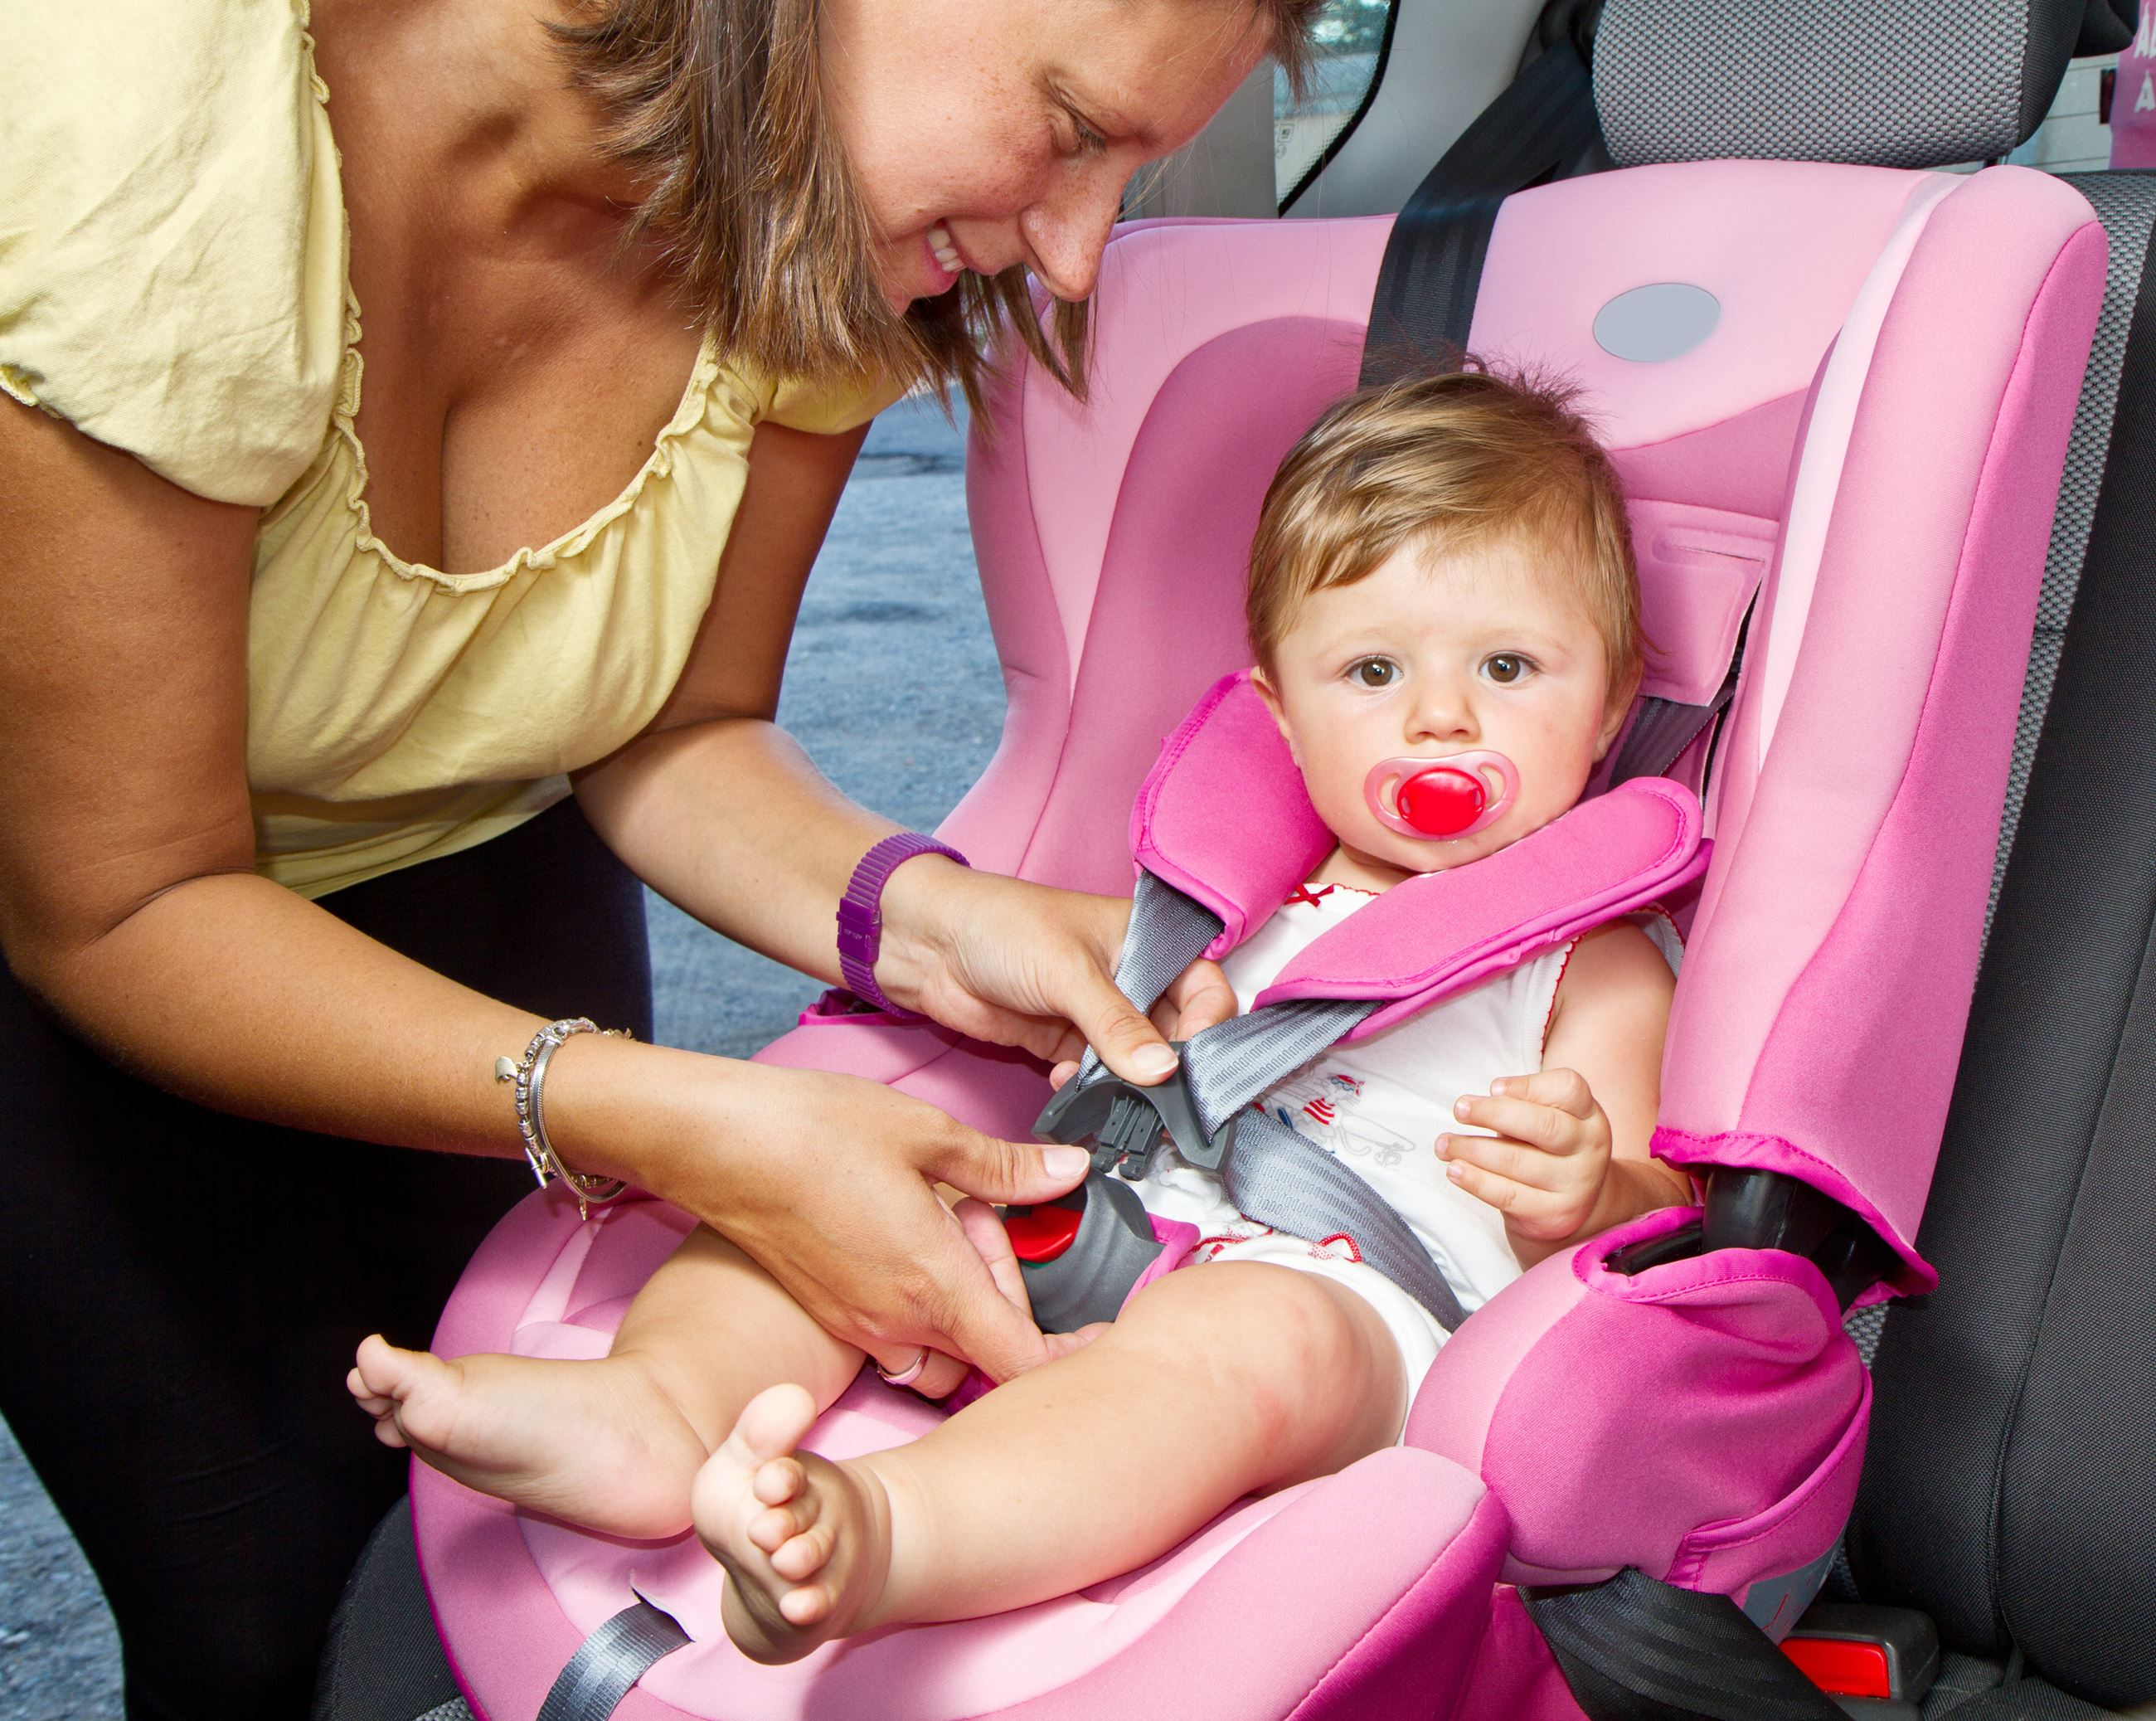 mother strapping toddler into pink car seat